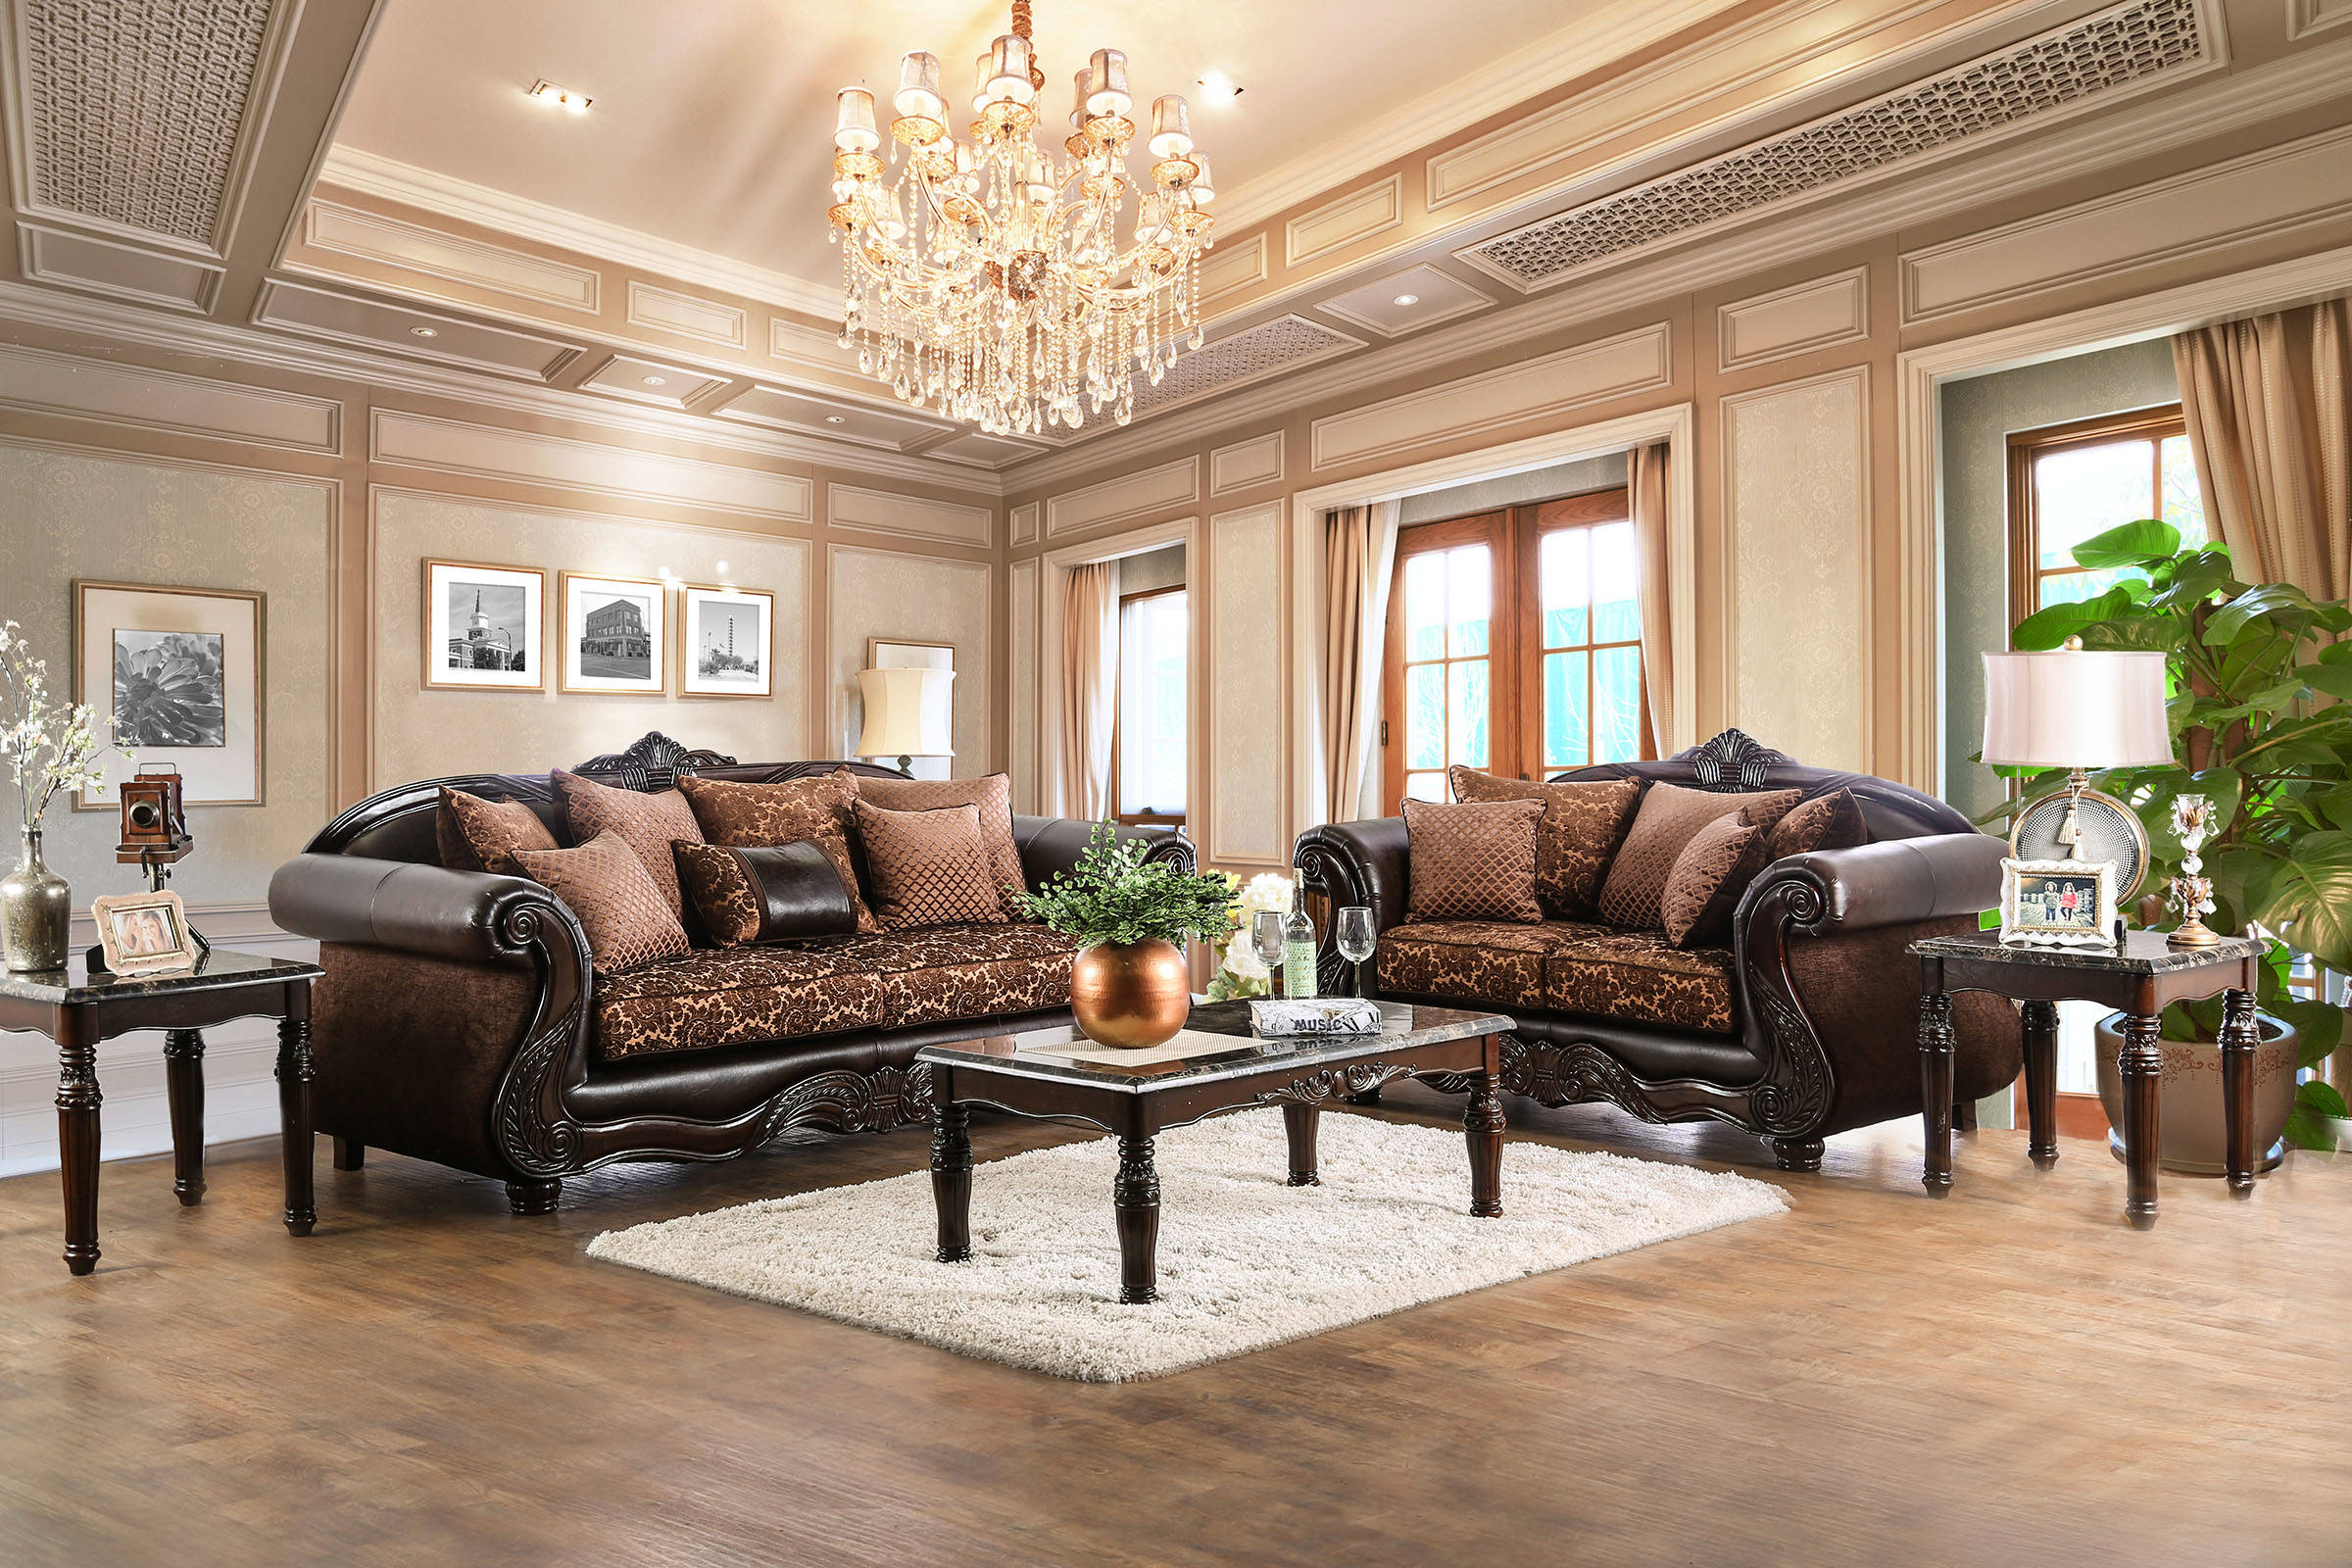 Elpis traditional brown fabric living room set living for Best living room set deals